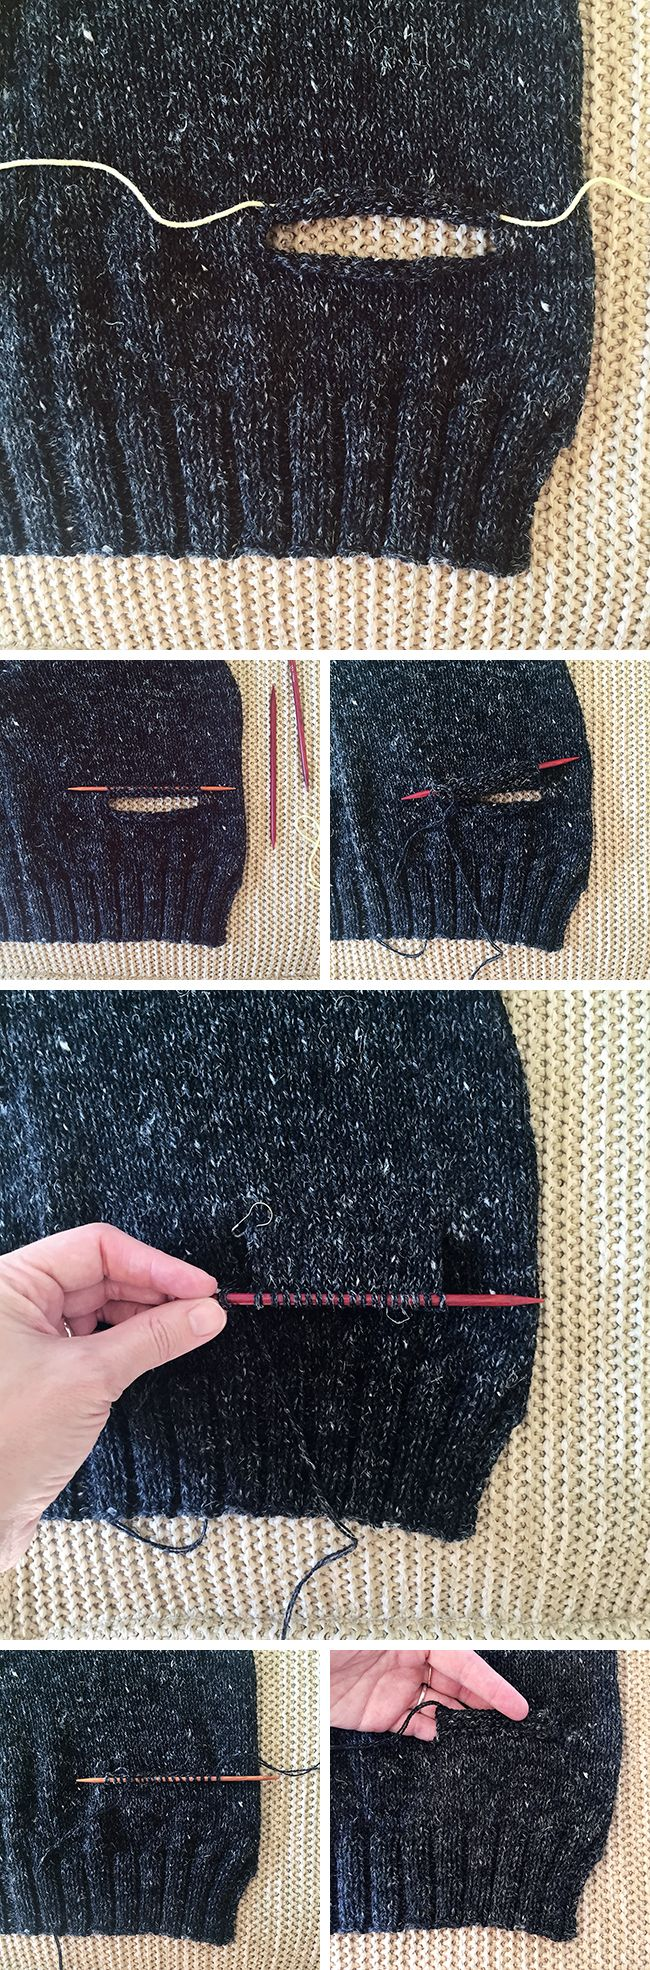 Last FebruaryI did a tutorial about how to knit inset pockets on a…